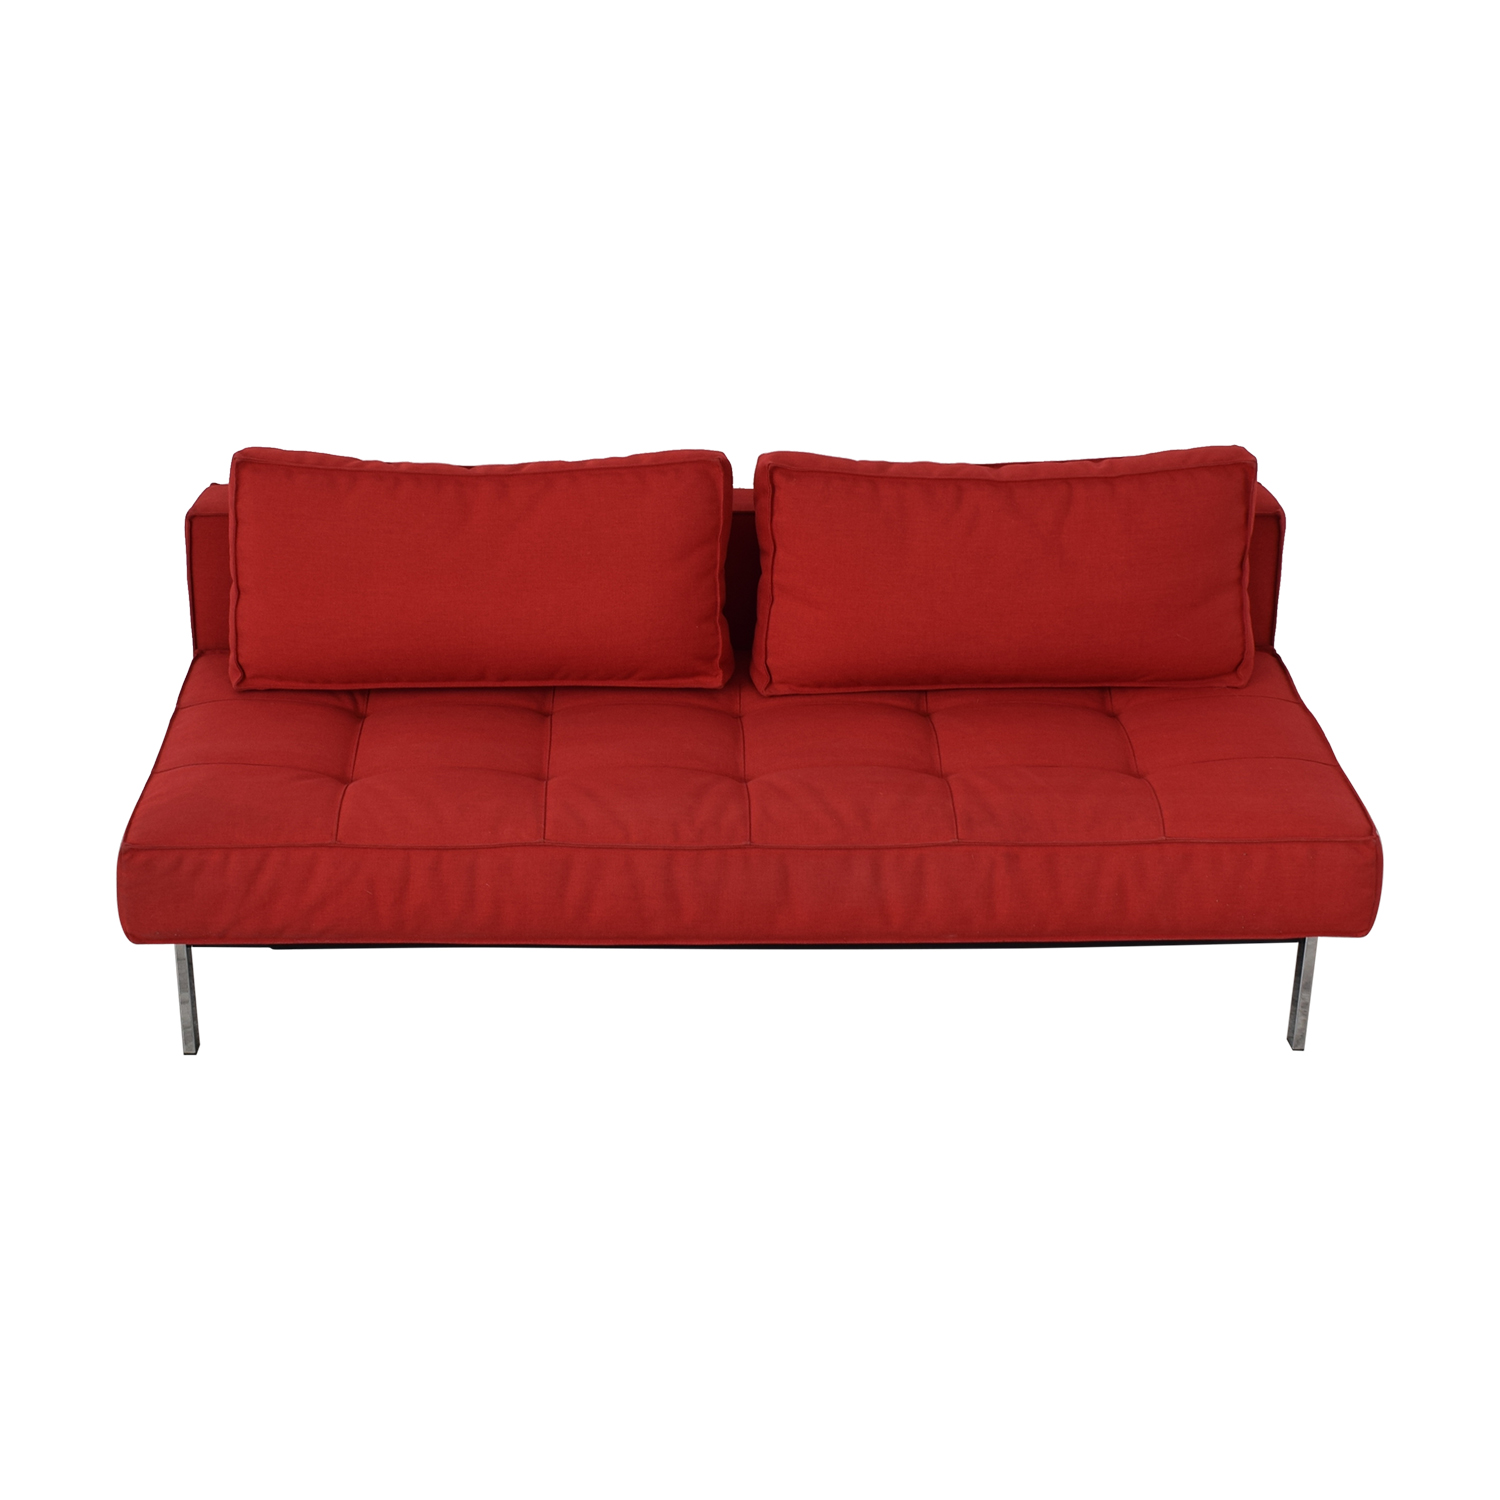 71 Off Innovation Living Red Tufted Armless Twin Sofa Bed Sofas